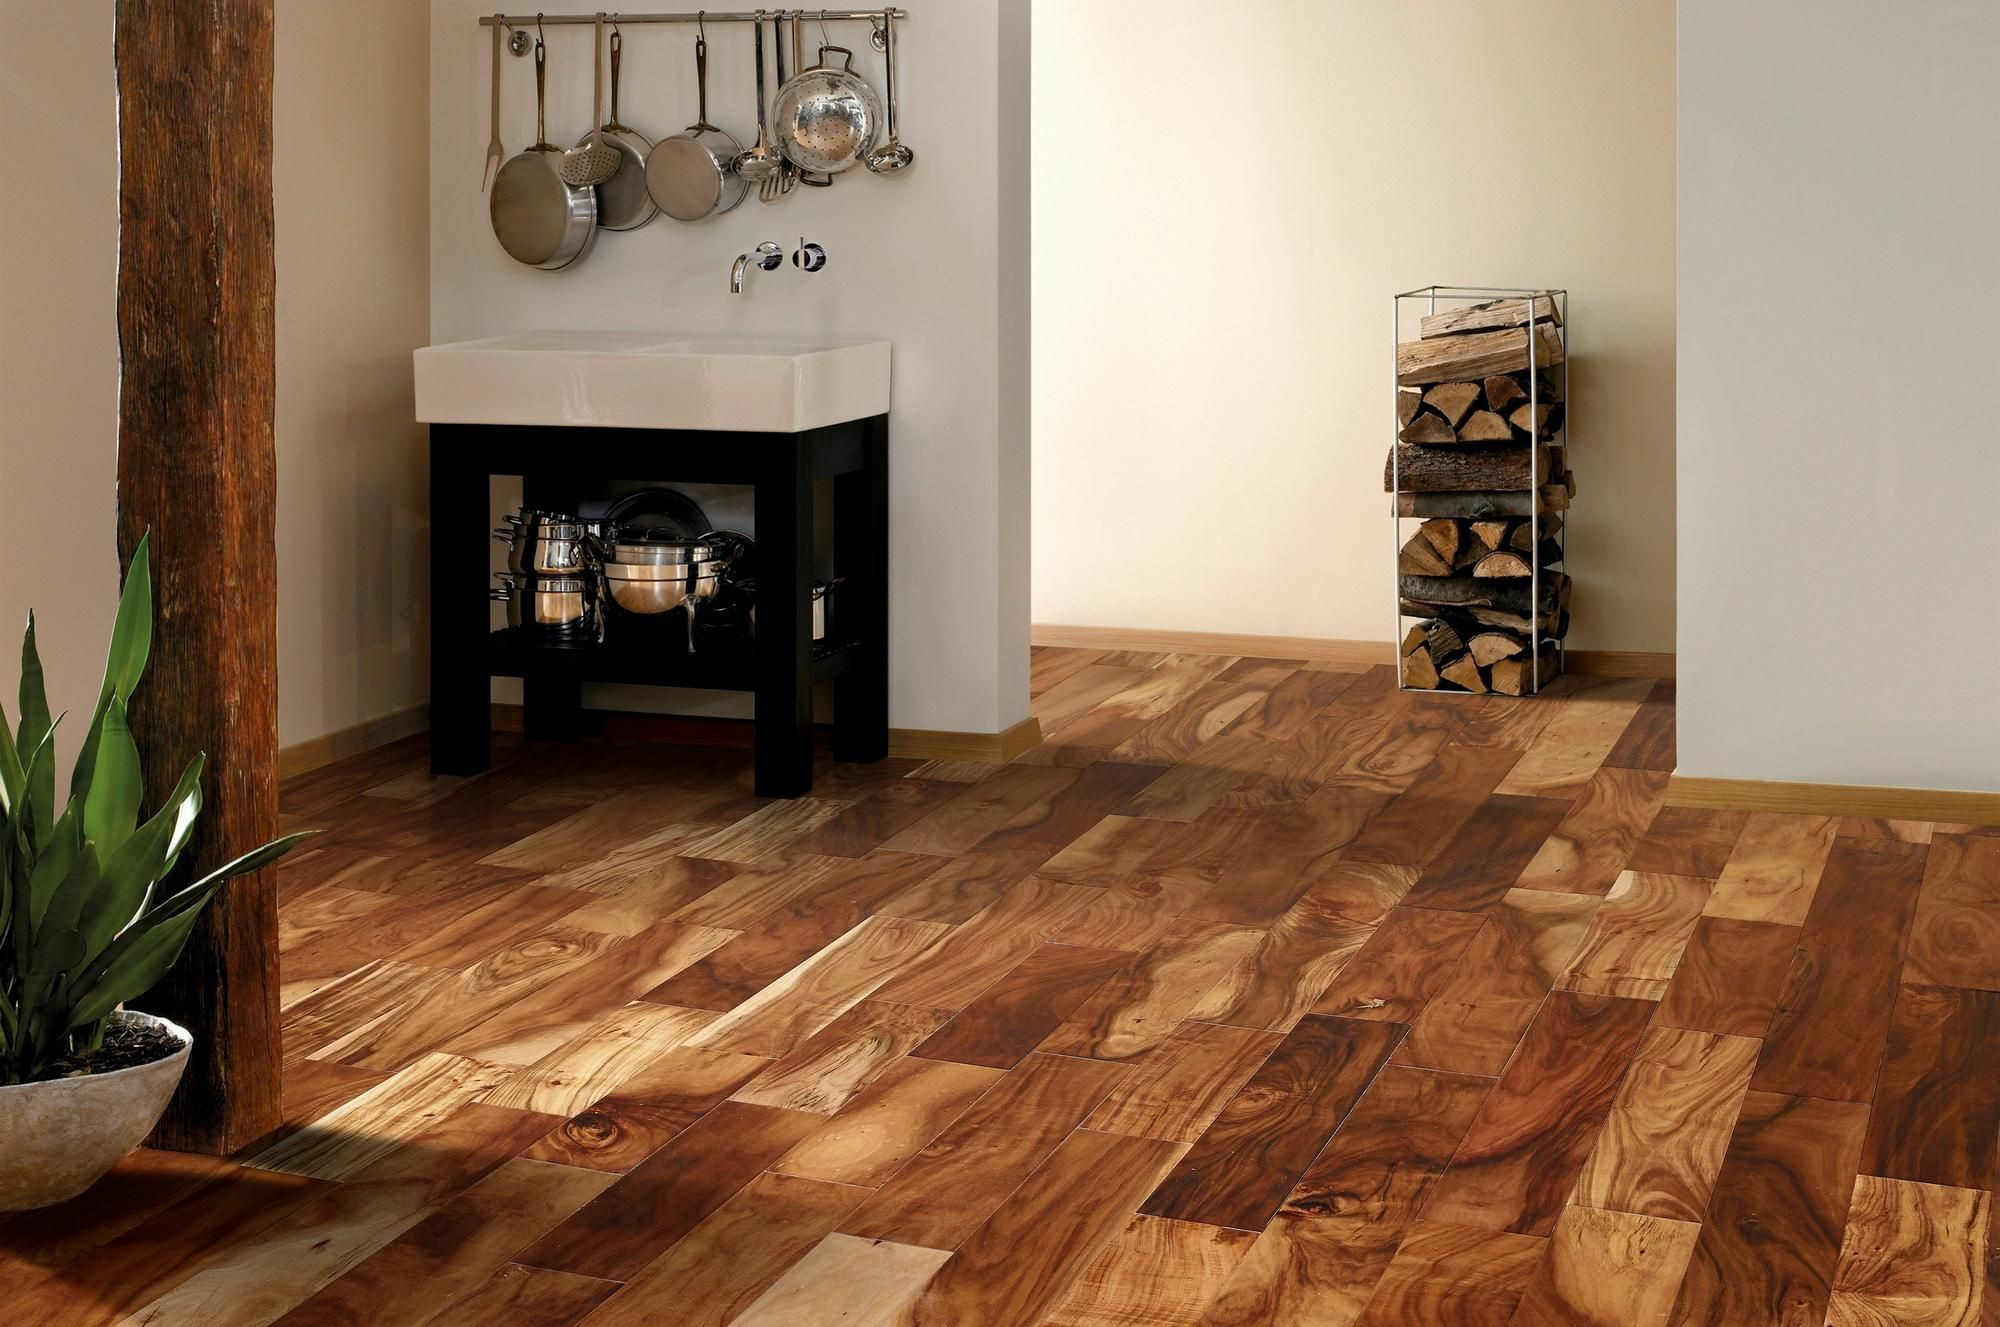 engineered hardwood flooring images of hardwood flooring phoenix floor and decor plano design home new throughout hardwood flooring phoenix floor and decor plano design home new kitchen l kitchen l kitchen 0d